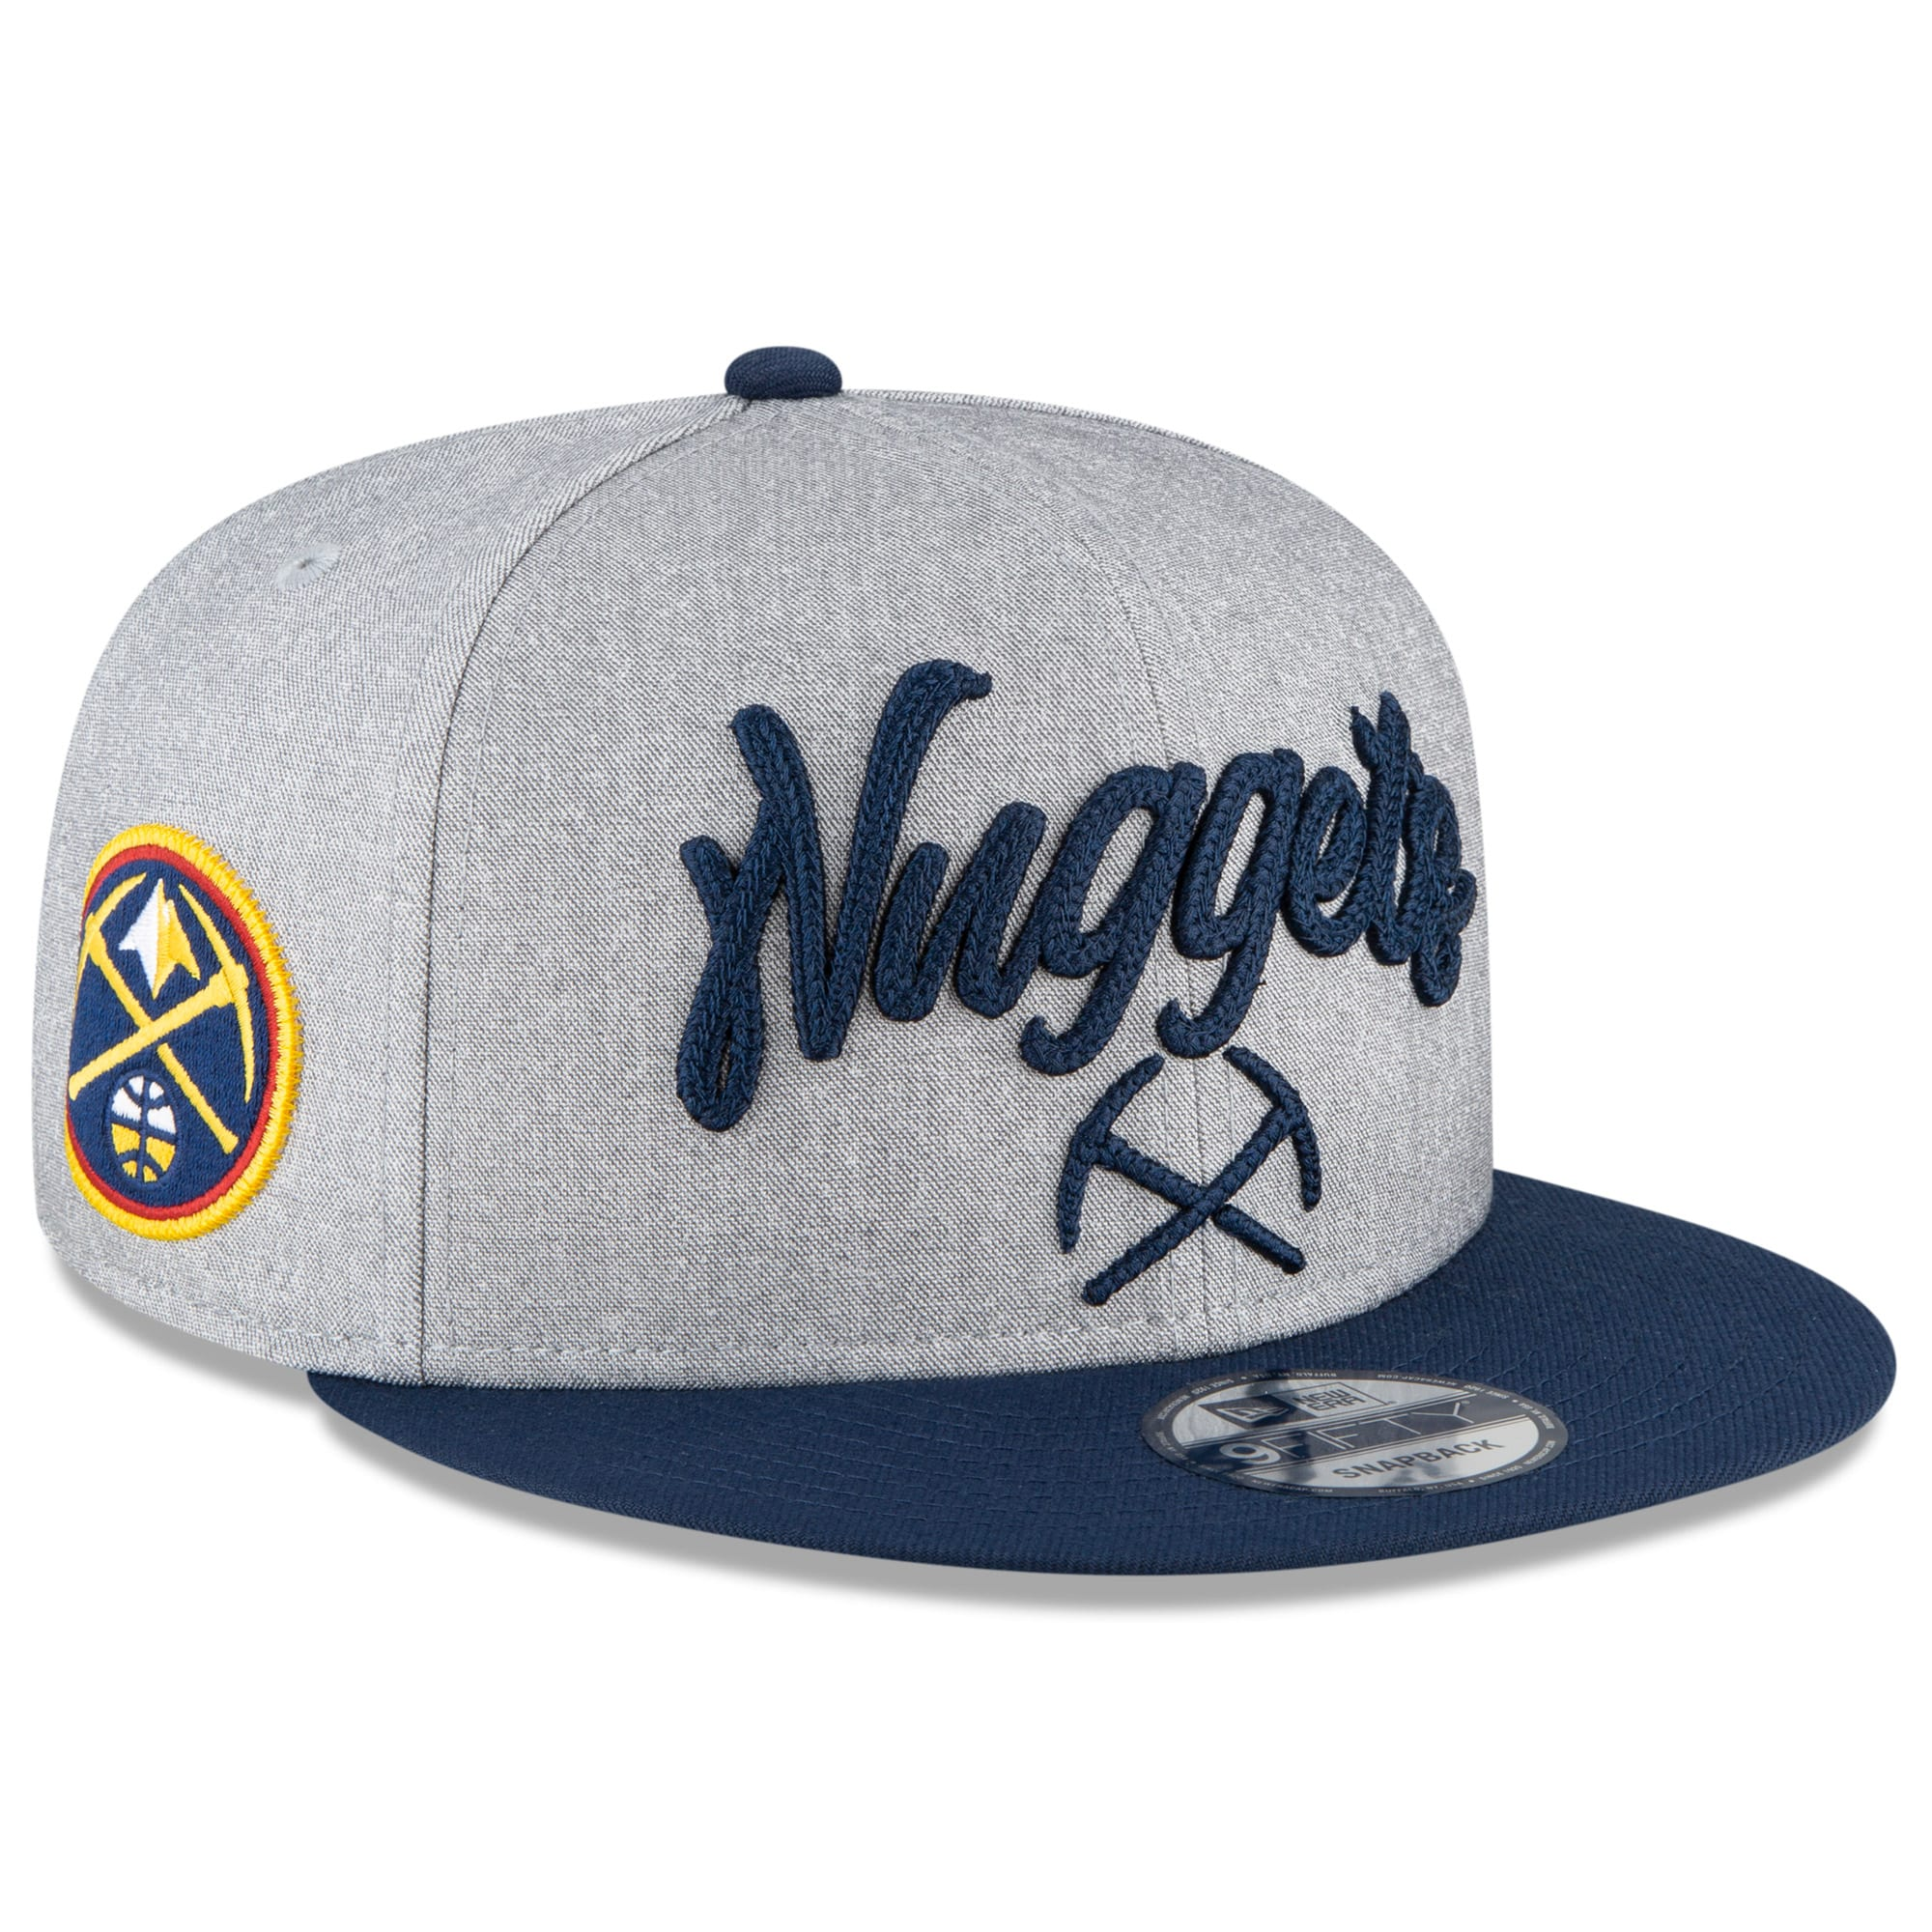 Denver Nuggets New Era 2020 NBA Draft Official On-Stage 9FIFTY Snapback Adjustable Hat - Heather Gray/Navy